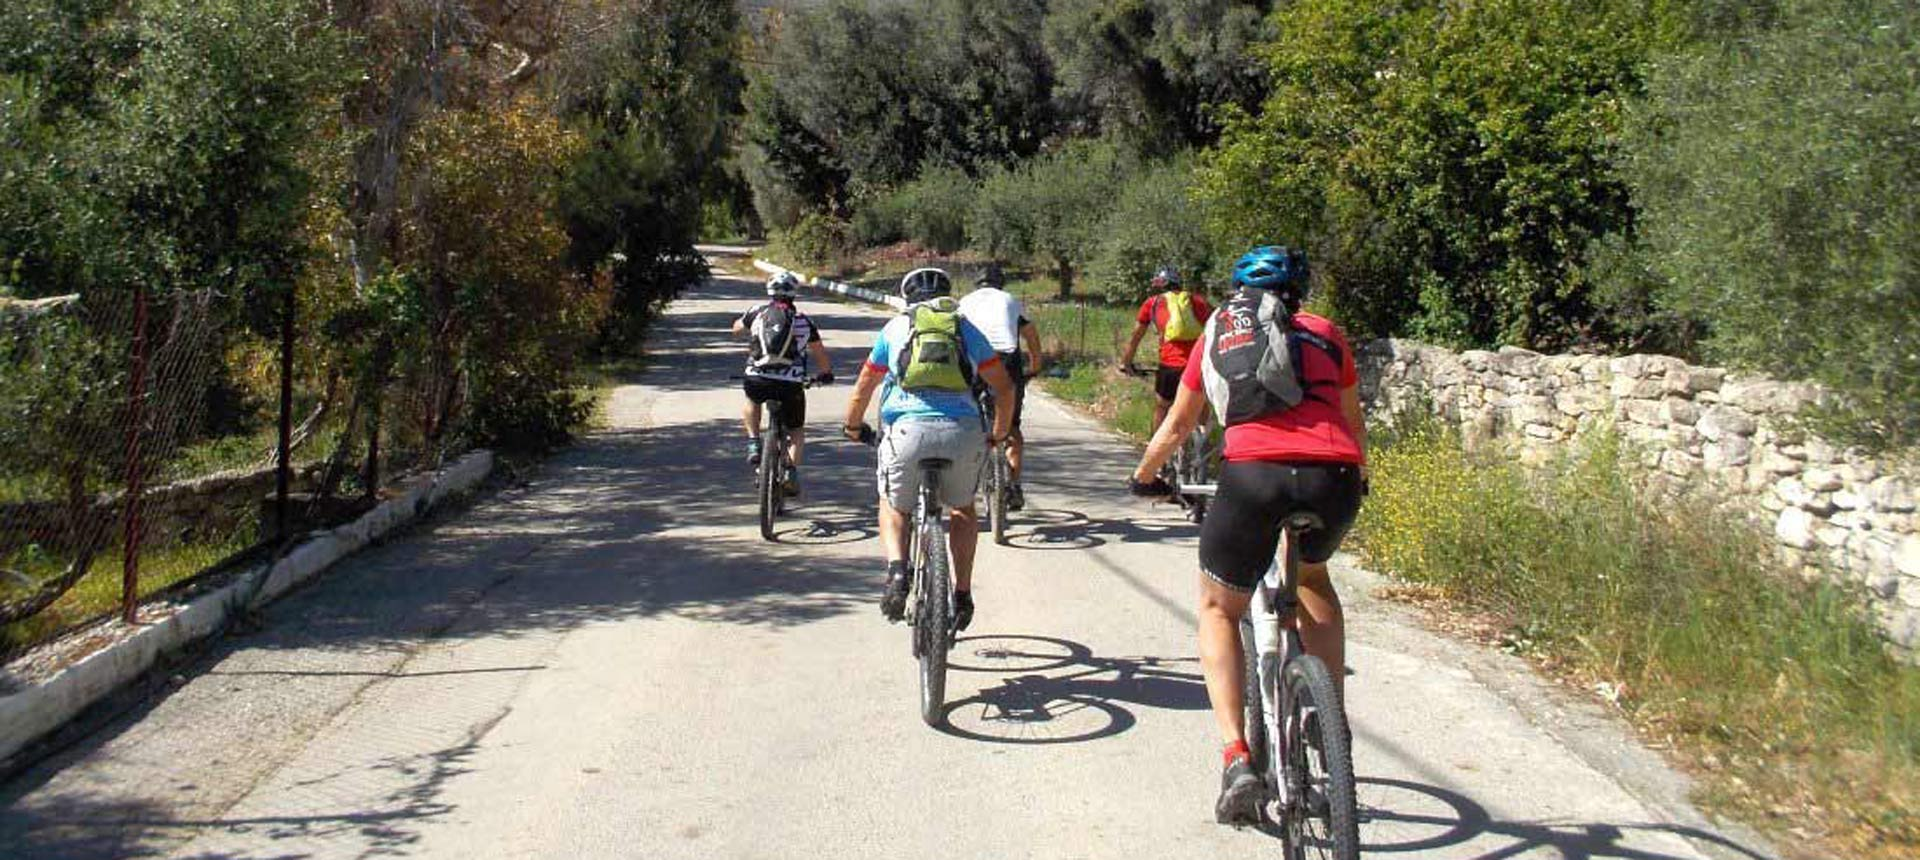 Crete Margarites mountain bike tour